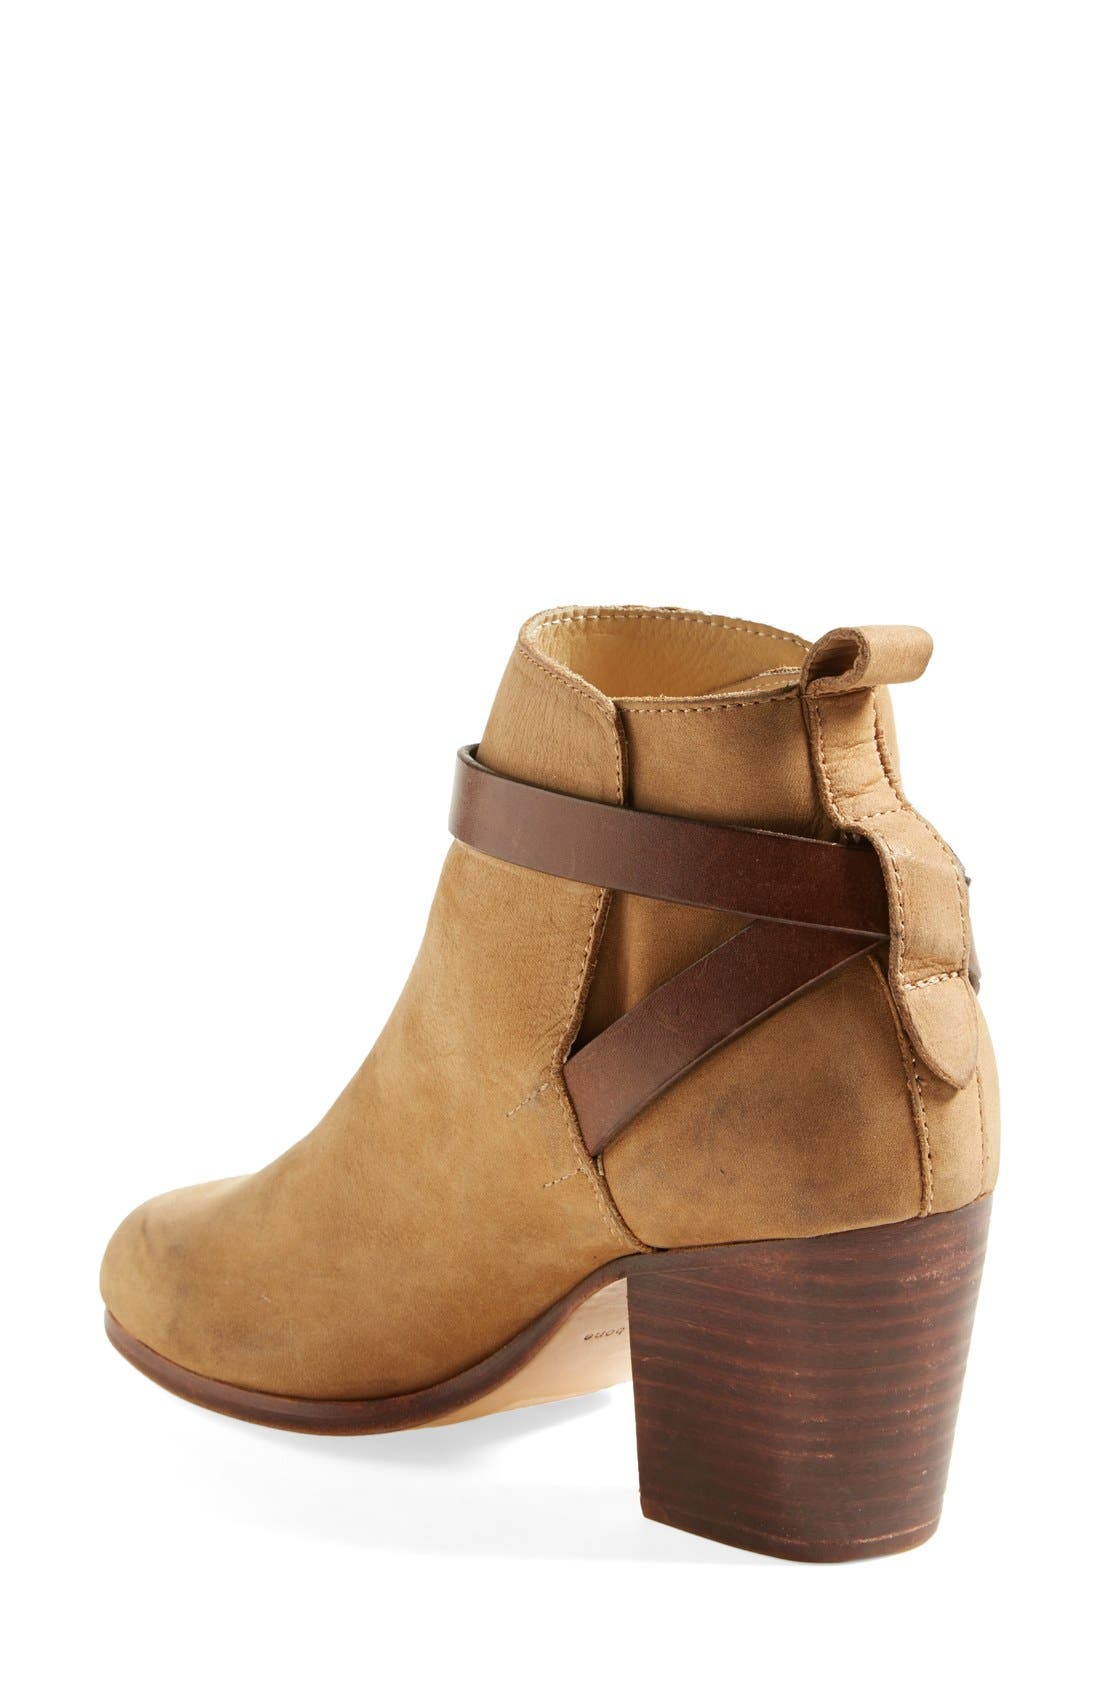 Alternate Image 2  - rag & bone 'Dalton' Boot (Women)